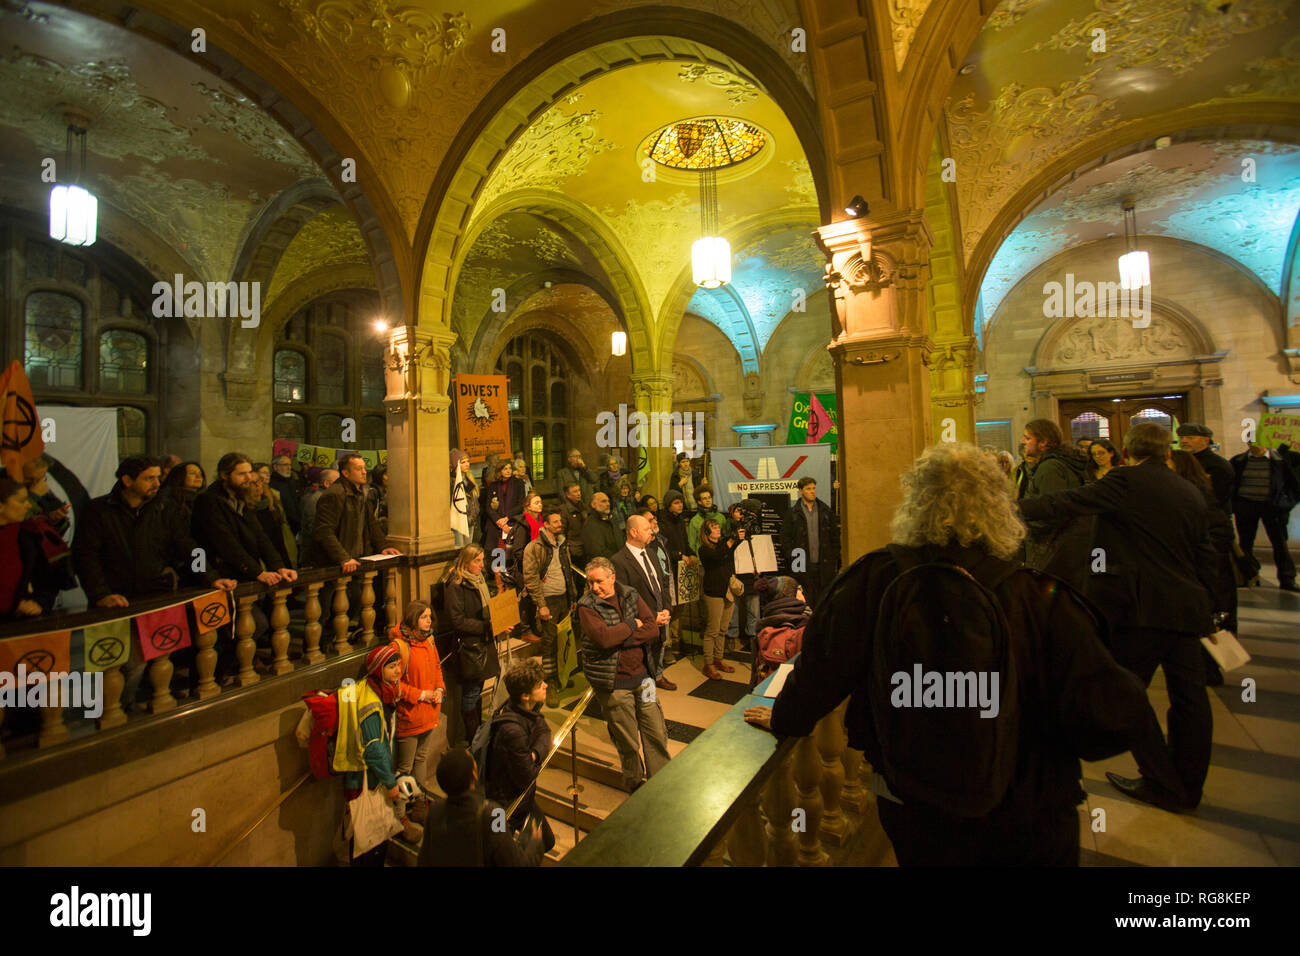 Oxford, UK. 28th January 2019. A motion to declare a state of climate emergency. Proposed by Green councillor Craig Simmonds, the motion was passed by Oxford City Council, evening of Monday 28th January 2018 at Oxford Town Hall. The motion carried  proposes that all decisions made by council  must be made with a state of climate emergency to be considered. Credit: adrian arbib/Alamy Live News Stock Photo